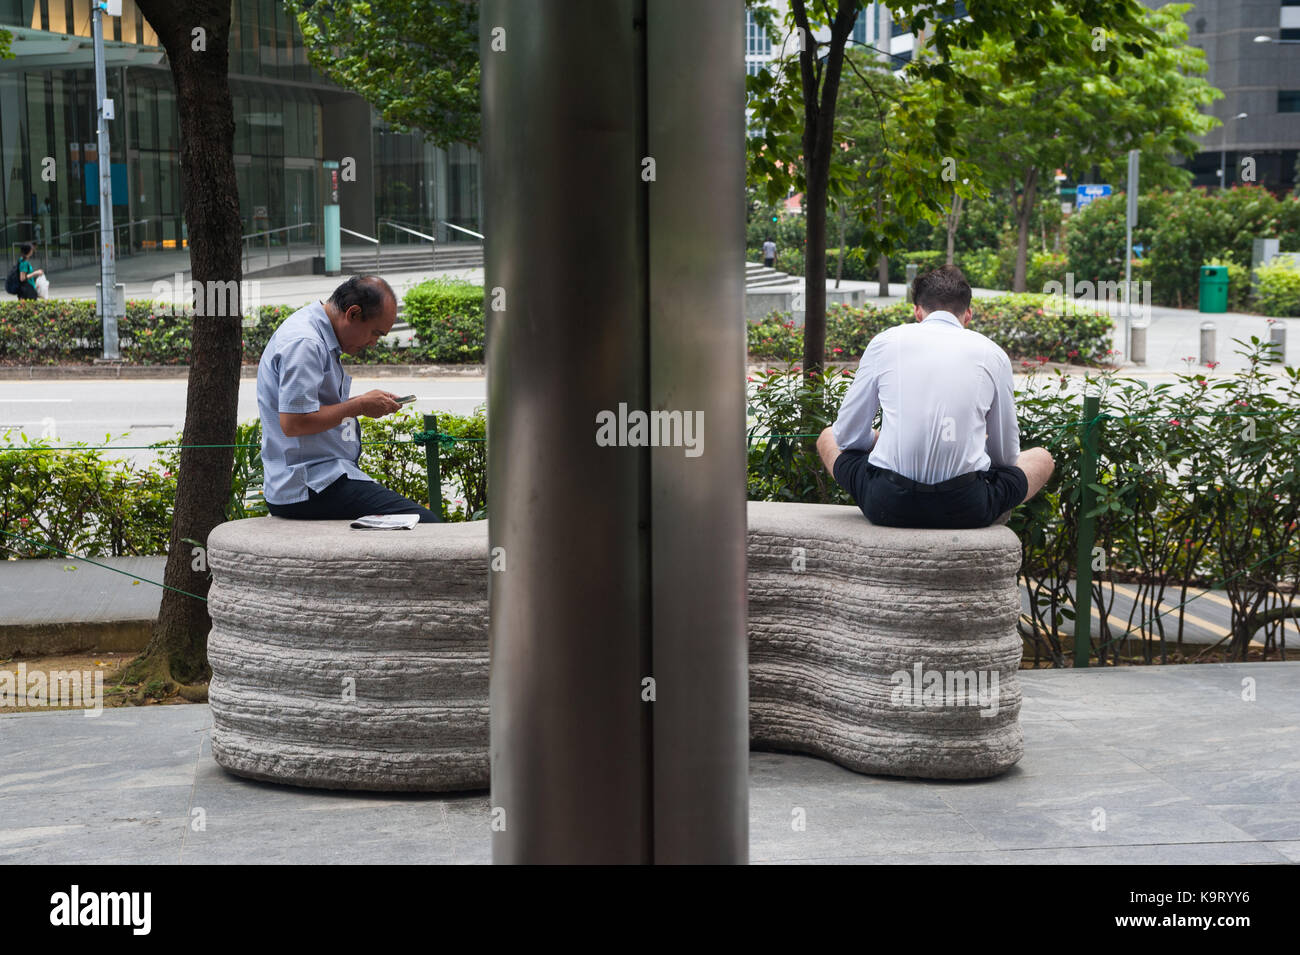 03.09.2017, Singapore, Republic of Singapore, Asia - Two men are occupied with their smartphones in Singapore's - Stock Image